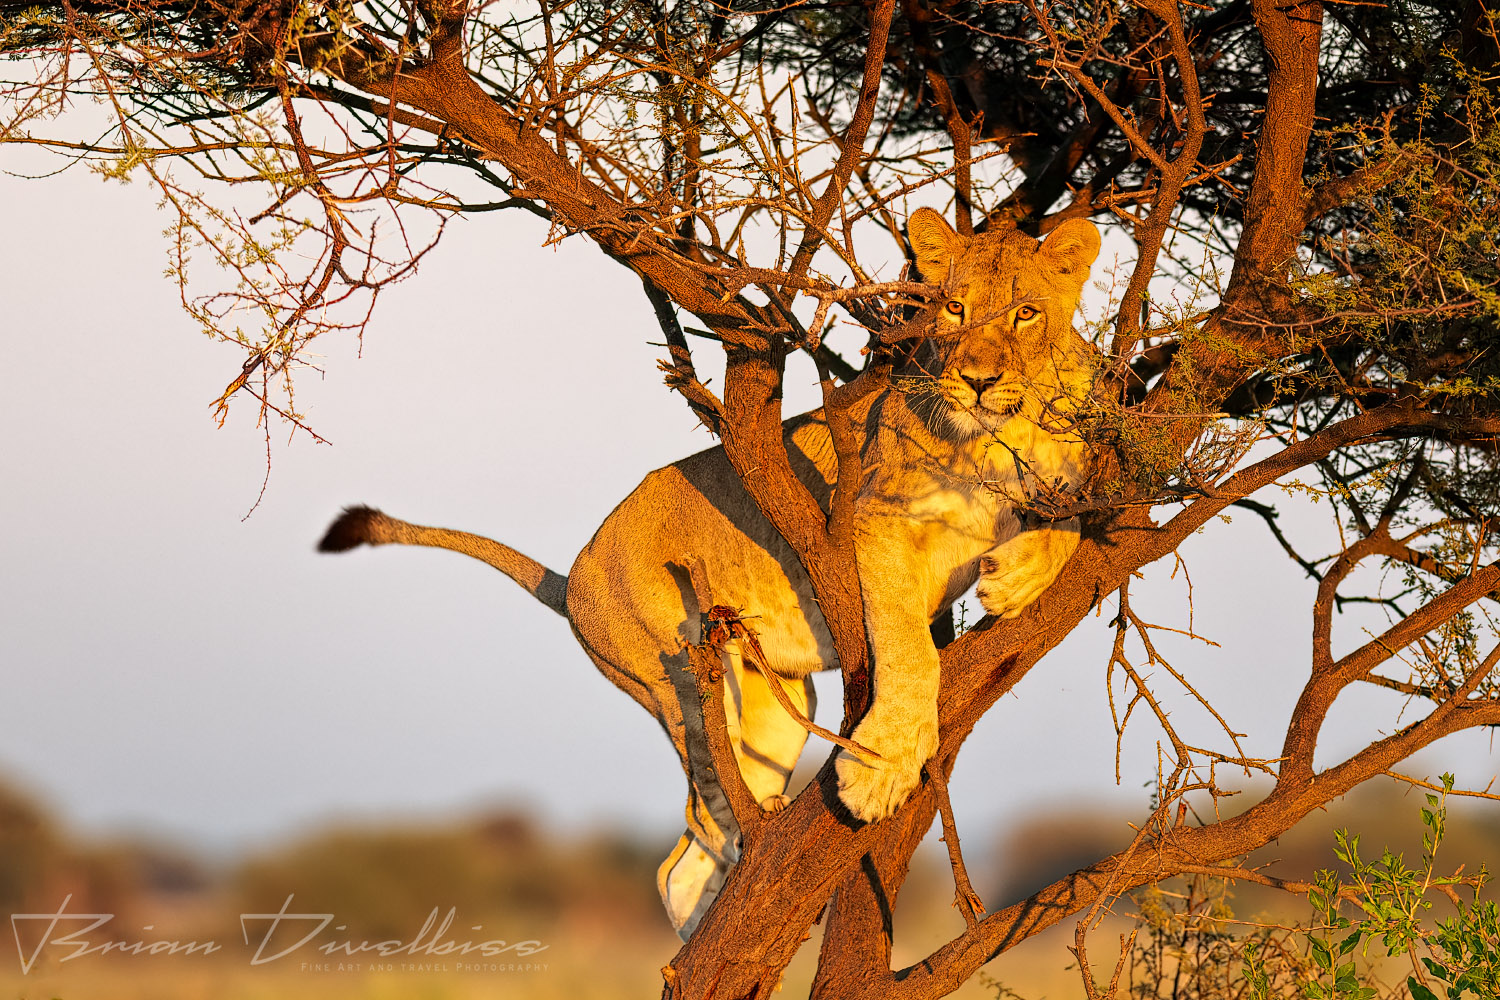 Subadult lioness climbing in a tree.